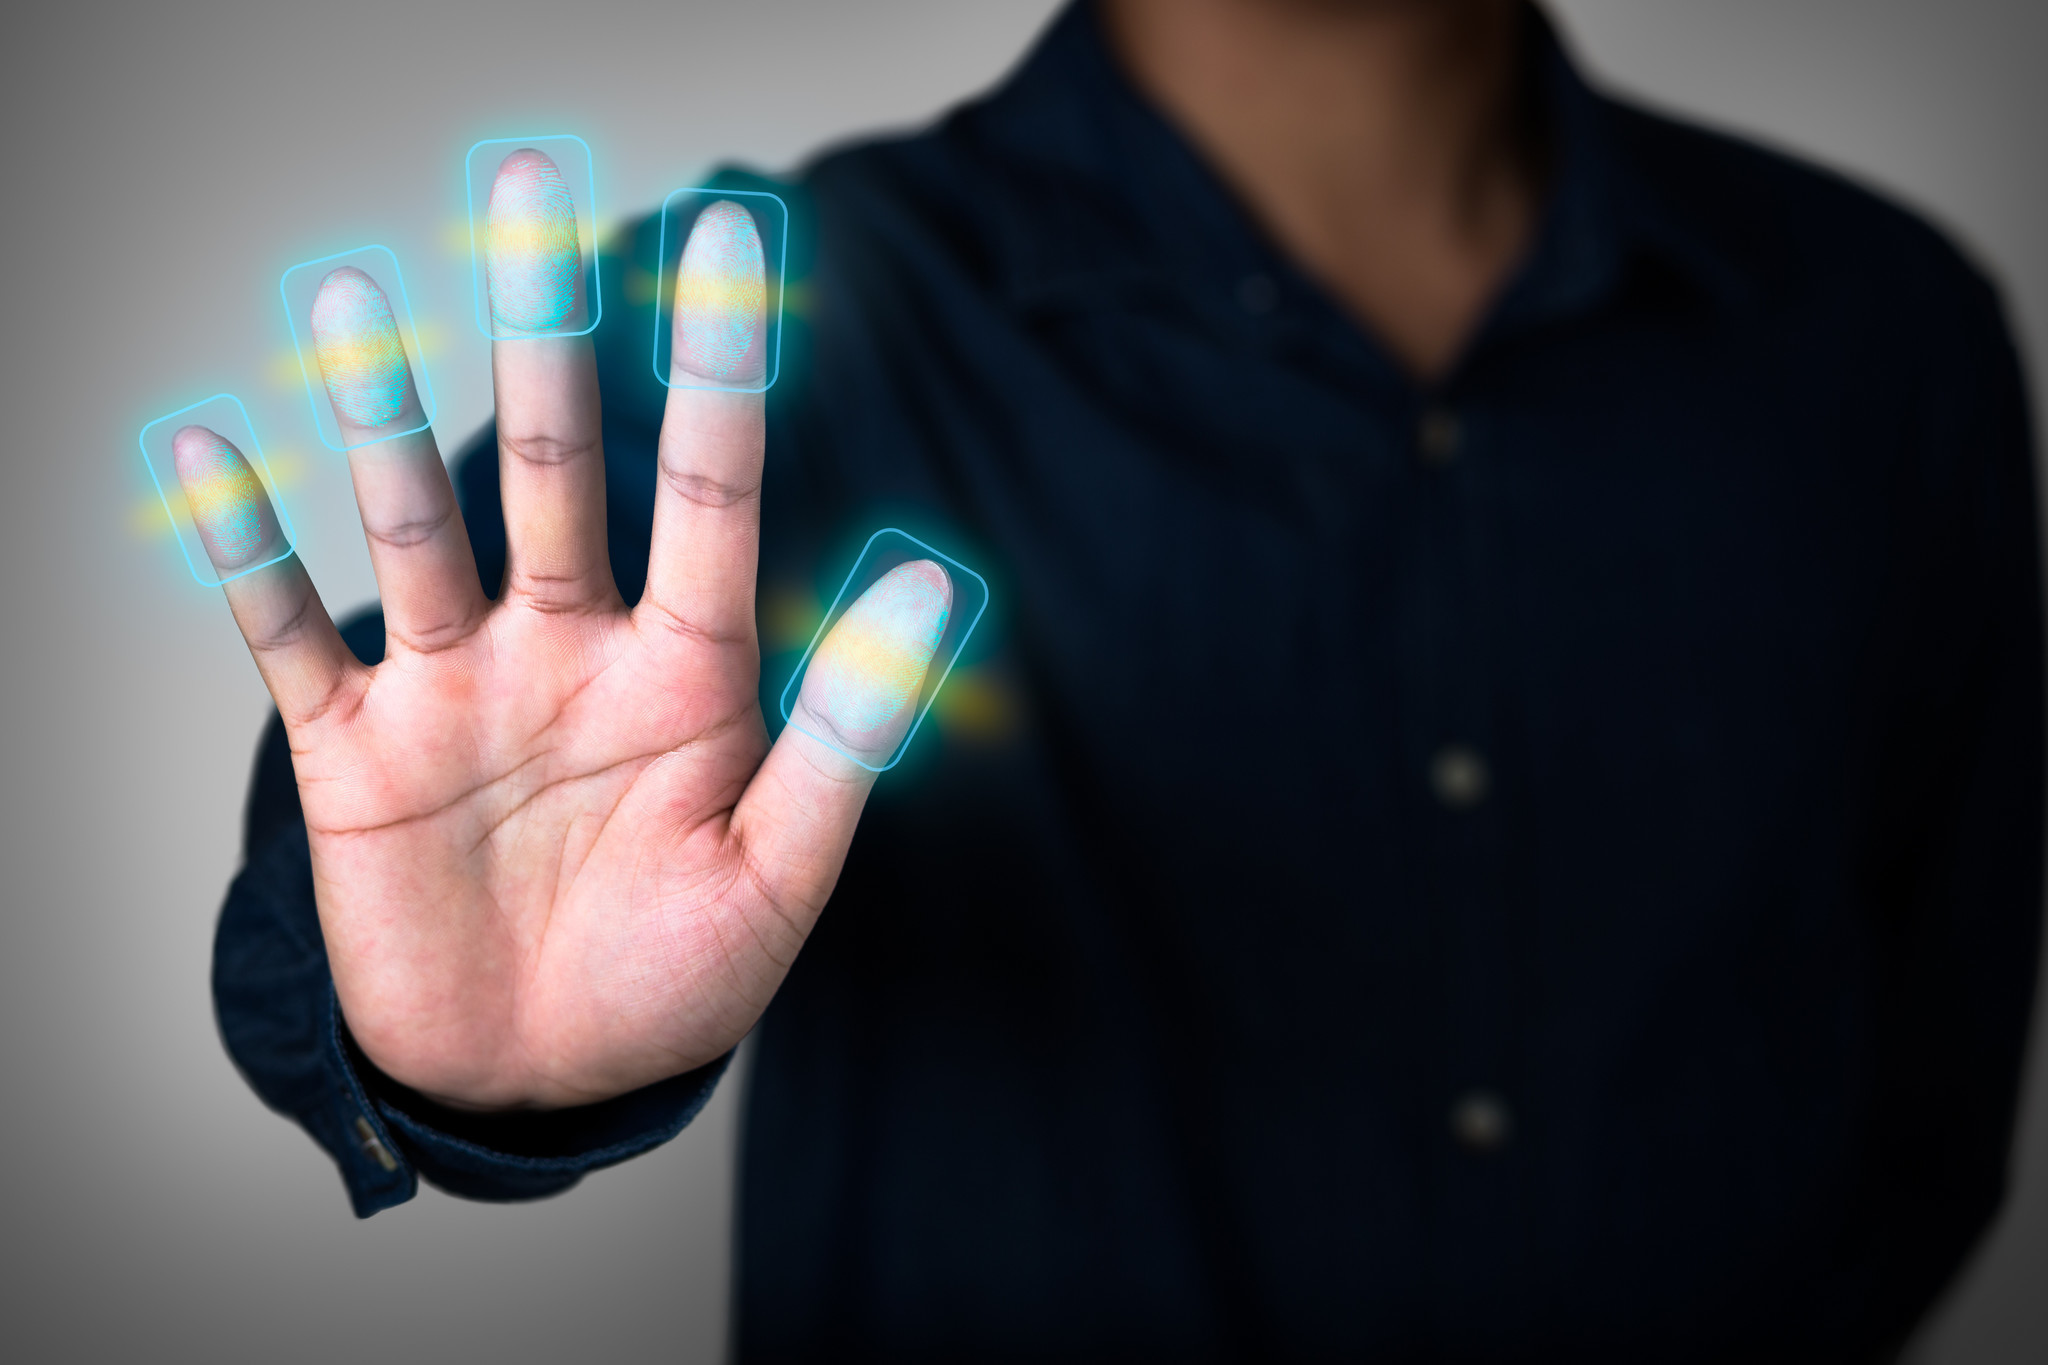 Open Class Action Lawsuits >> Illinois biometrics lawsuits may help define rules for ...